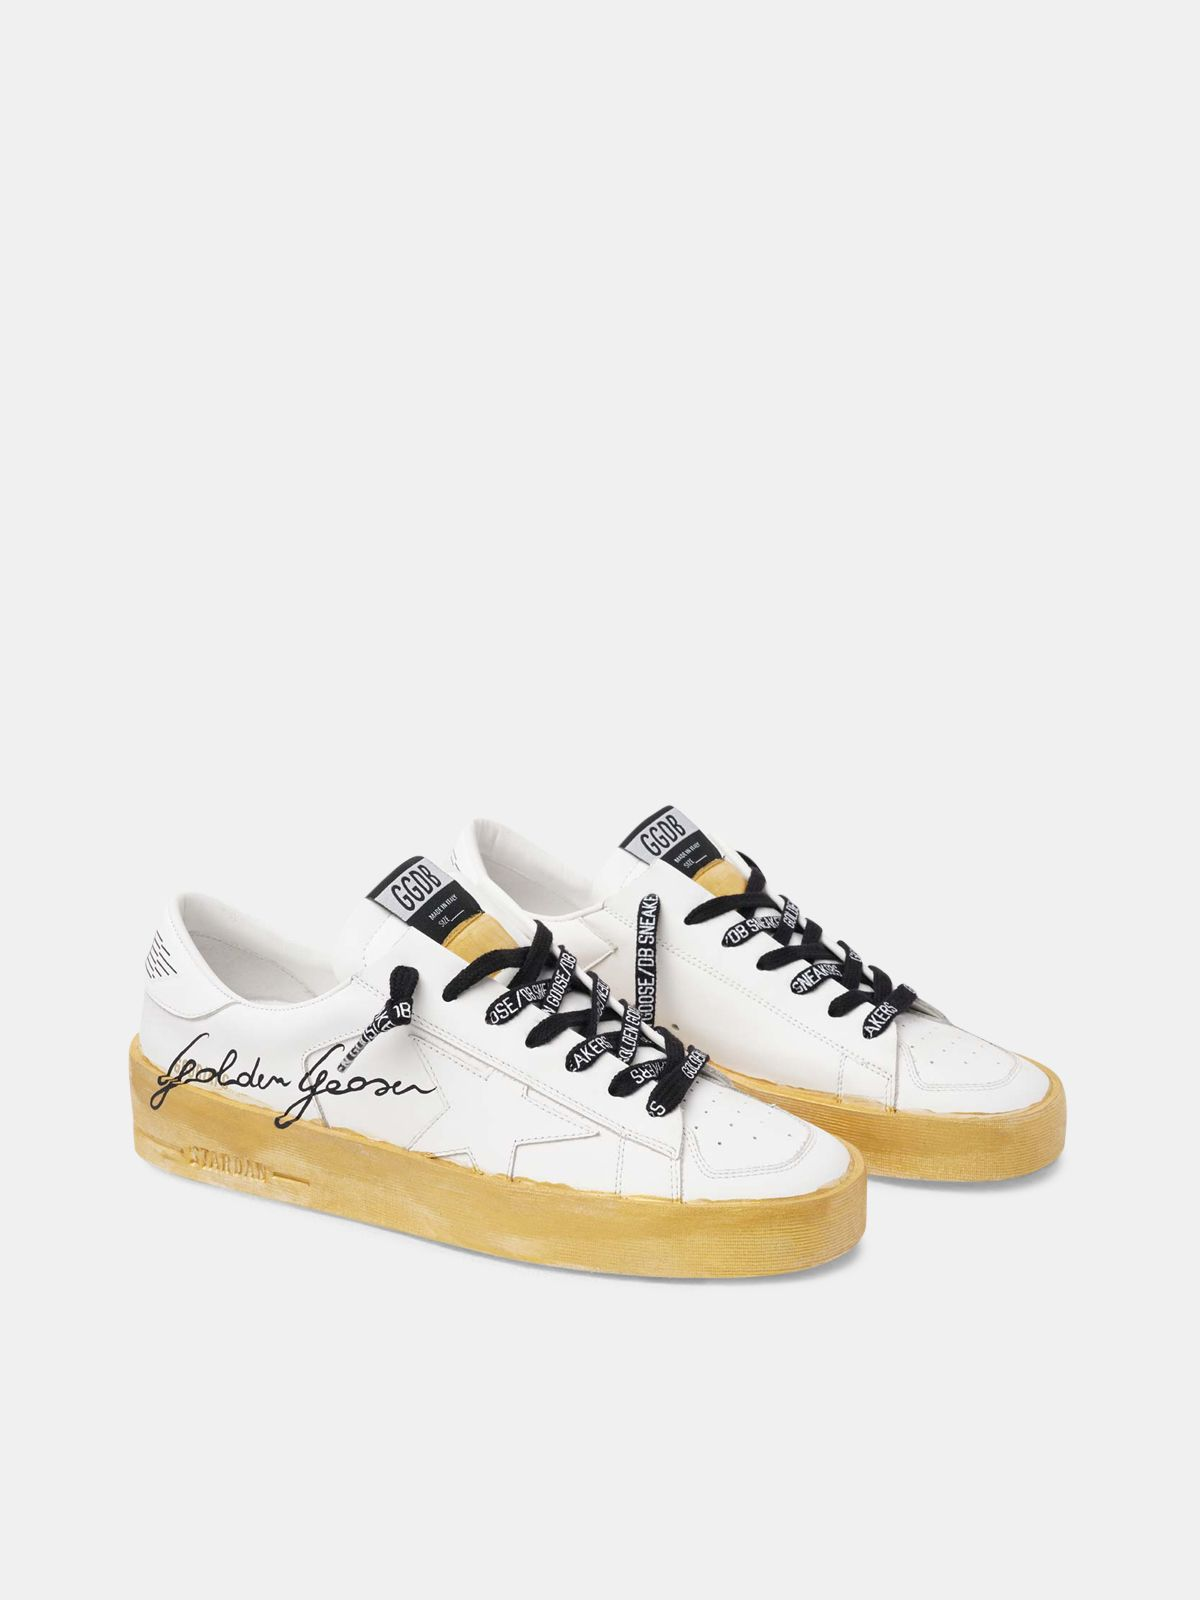 Golden Goose - Men's sneakers Stardan Limited Edition Sydney 100 in